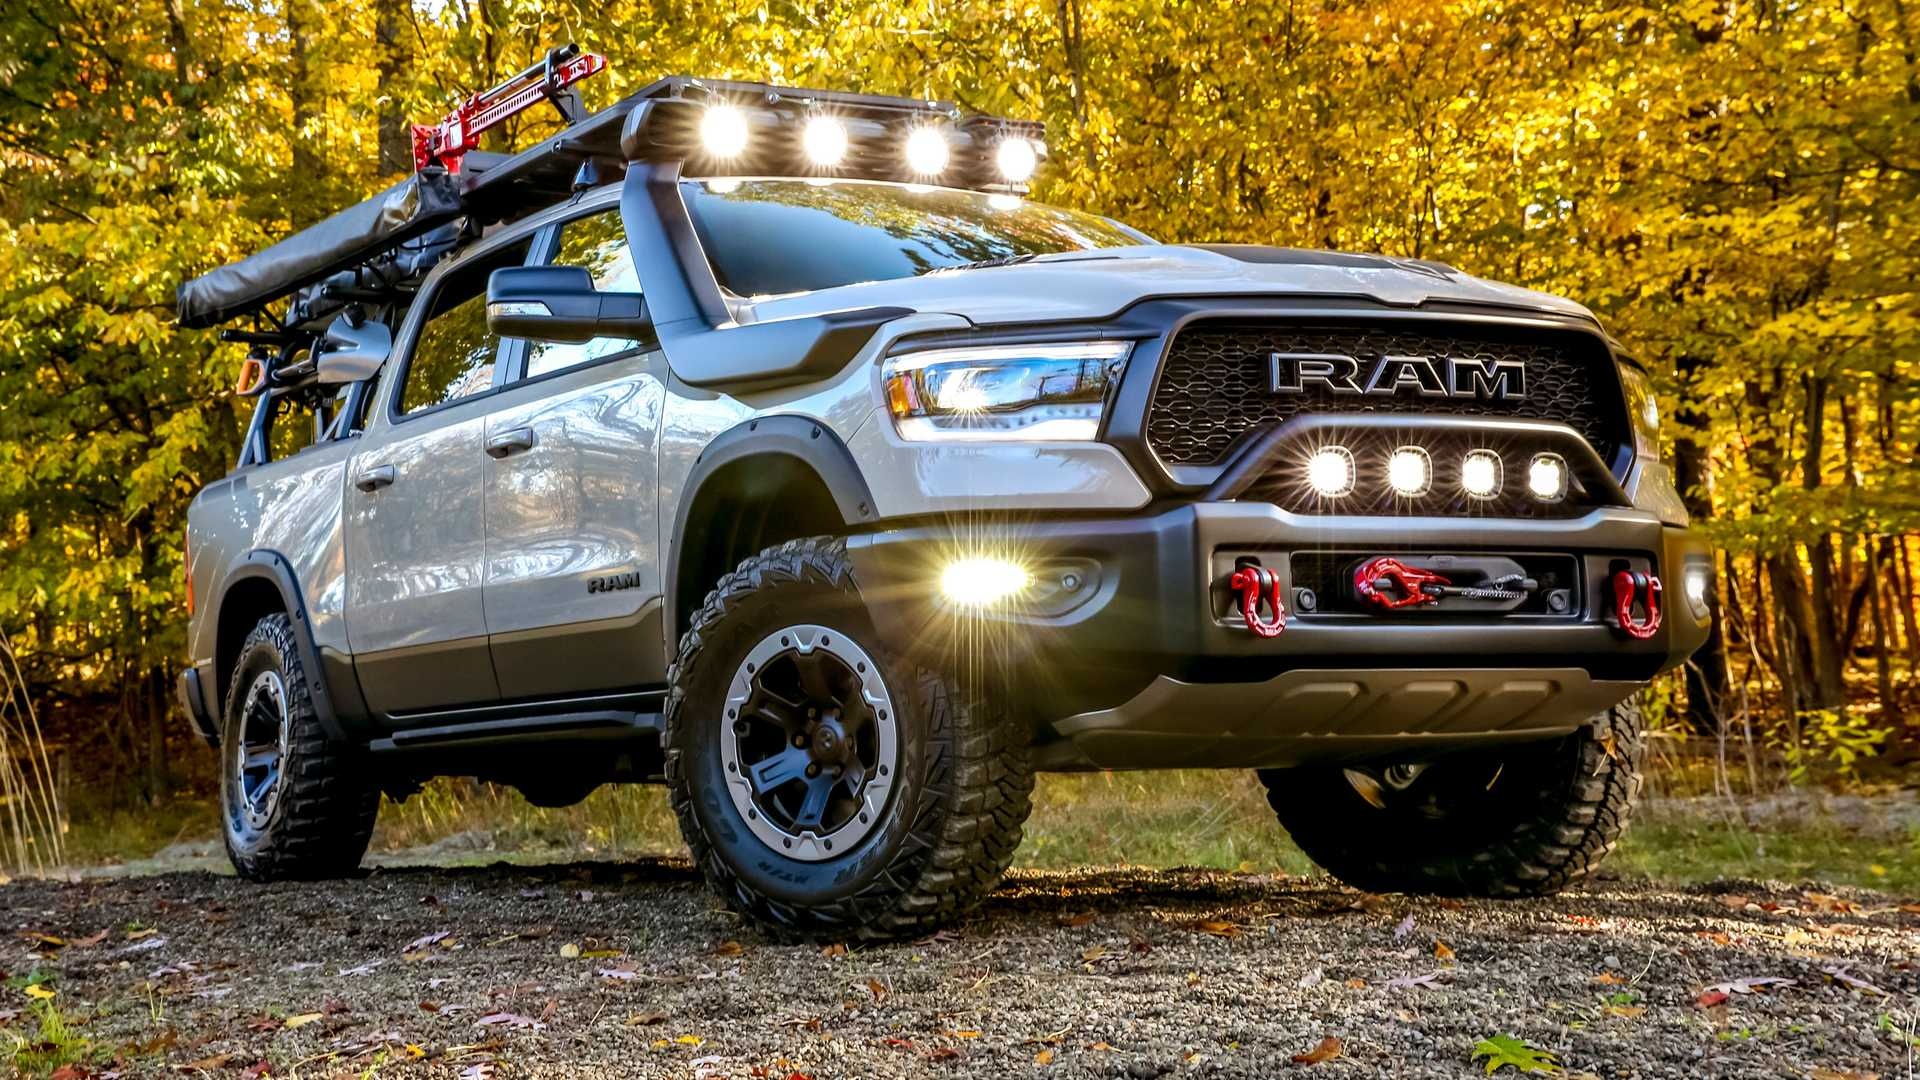 Ram Rebel Price >> Ram 1500 Rebel Otg Concept Explores The Truck S Adventurous Side